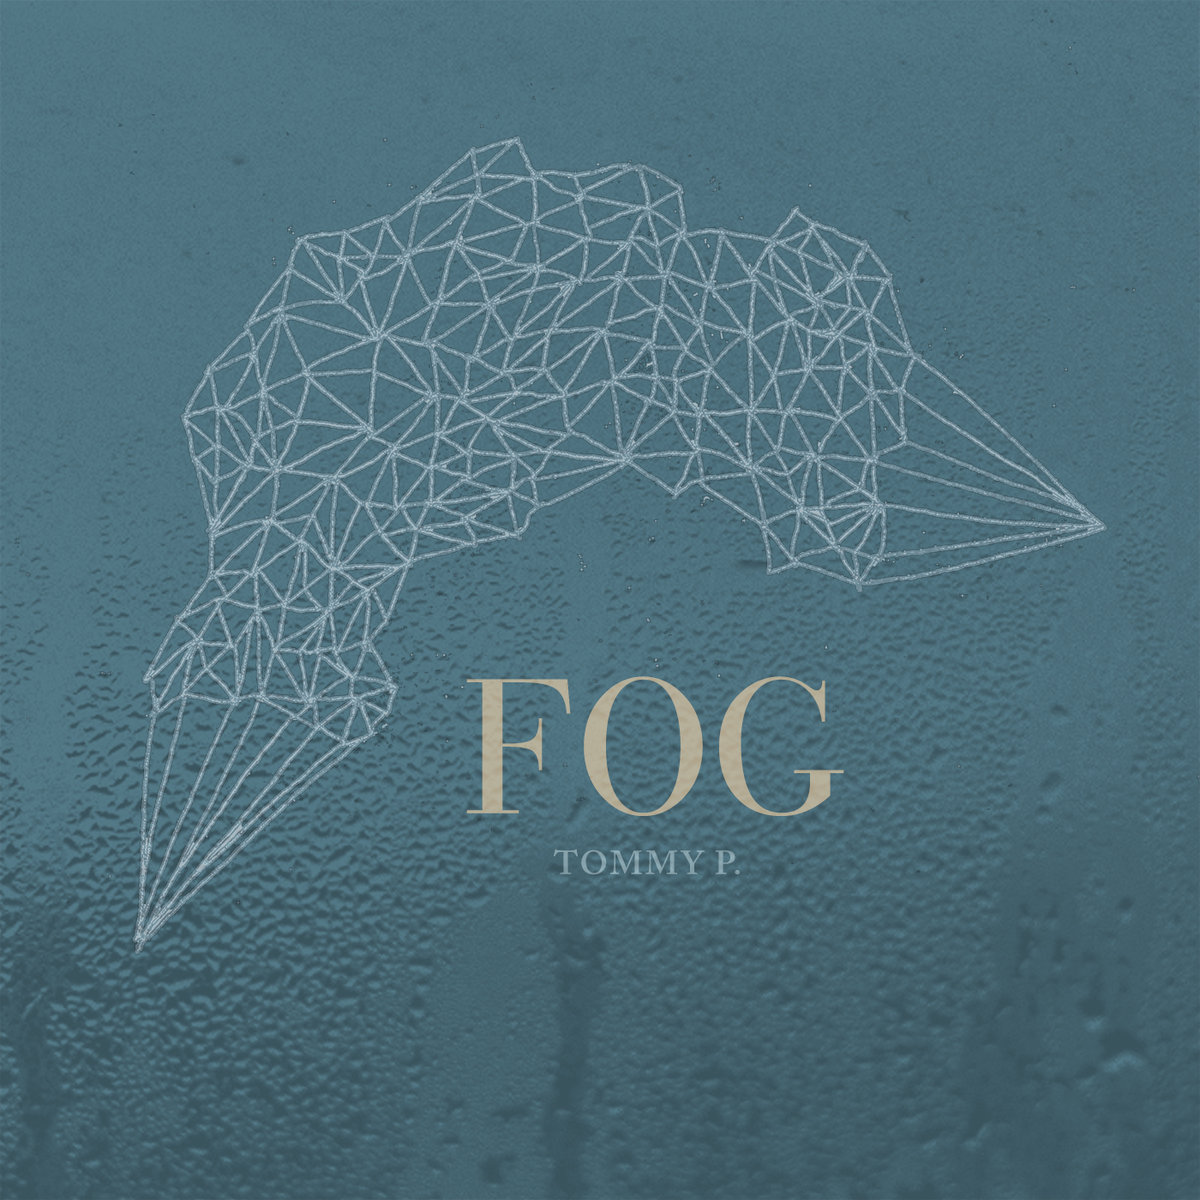 Tommy P. - Where I Began @ 'Fog' album (11th ave records, 11thaverecords 11th avenue)